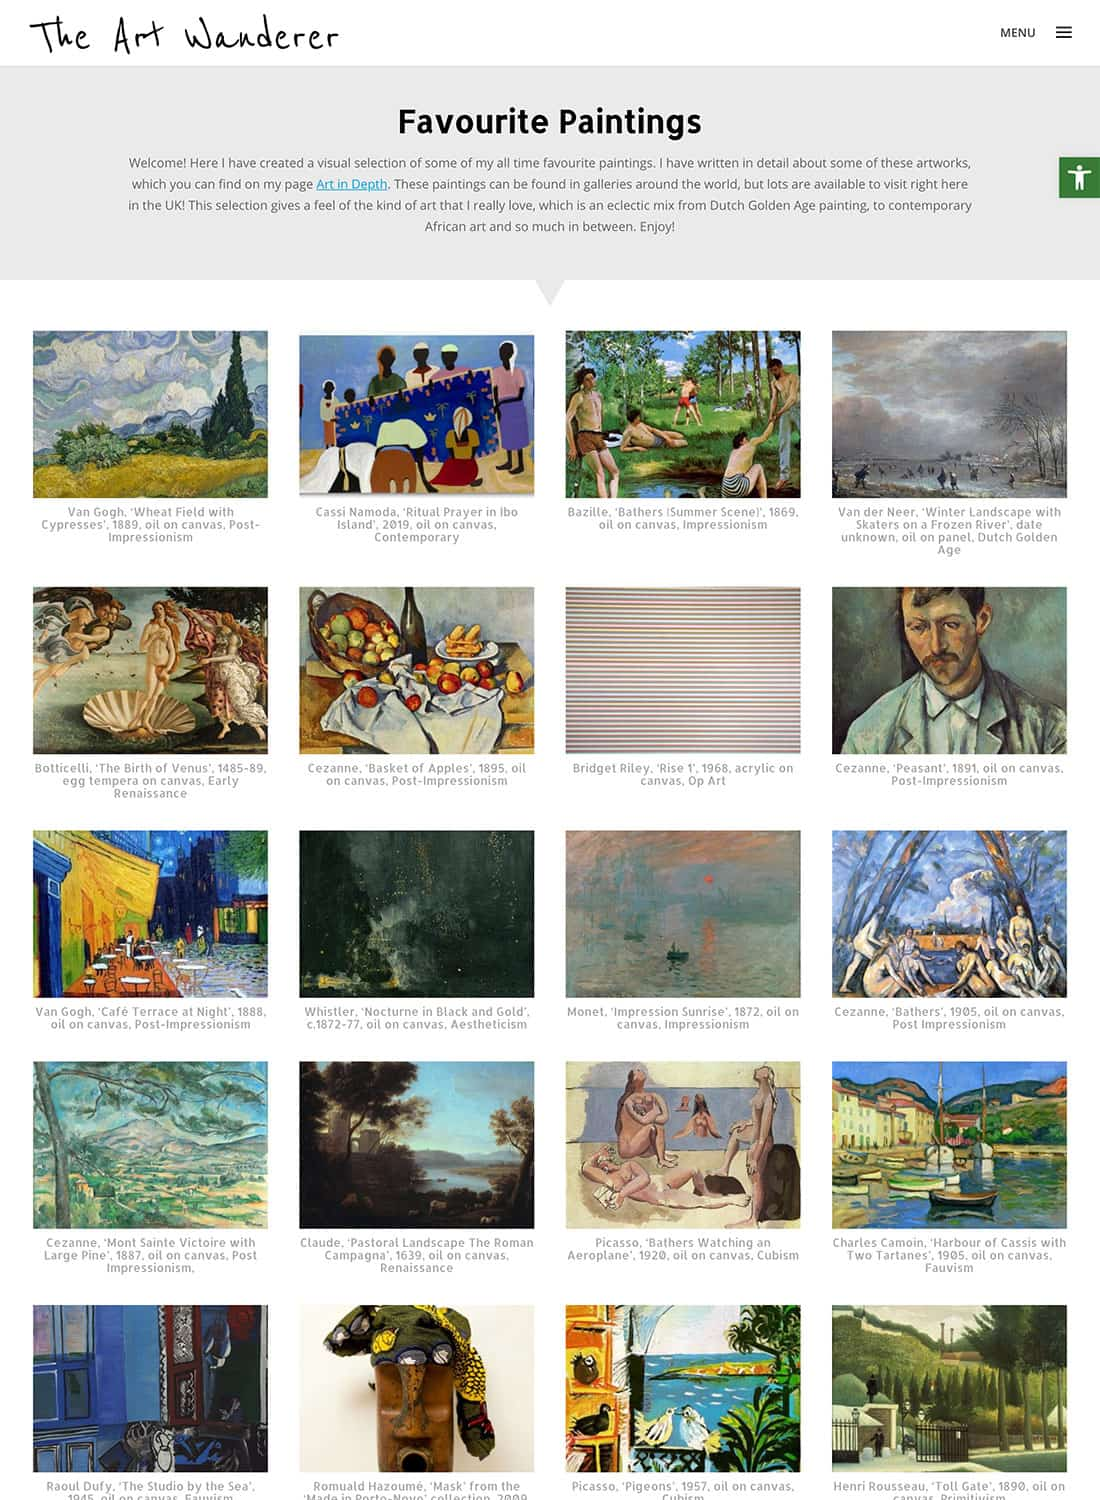 Favourite Paintings gallery page layout